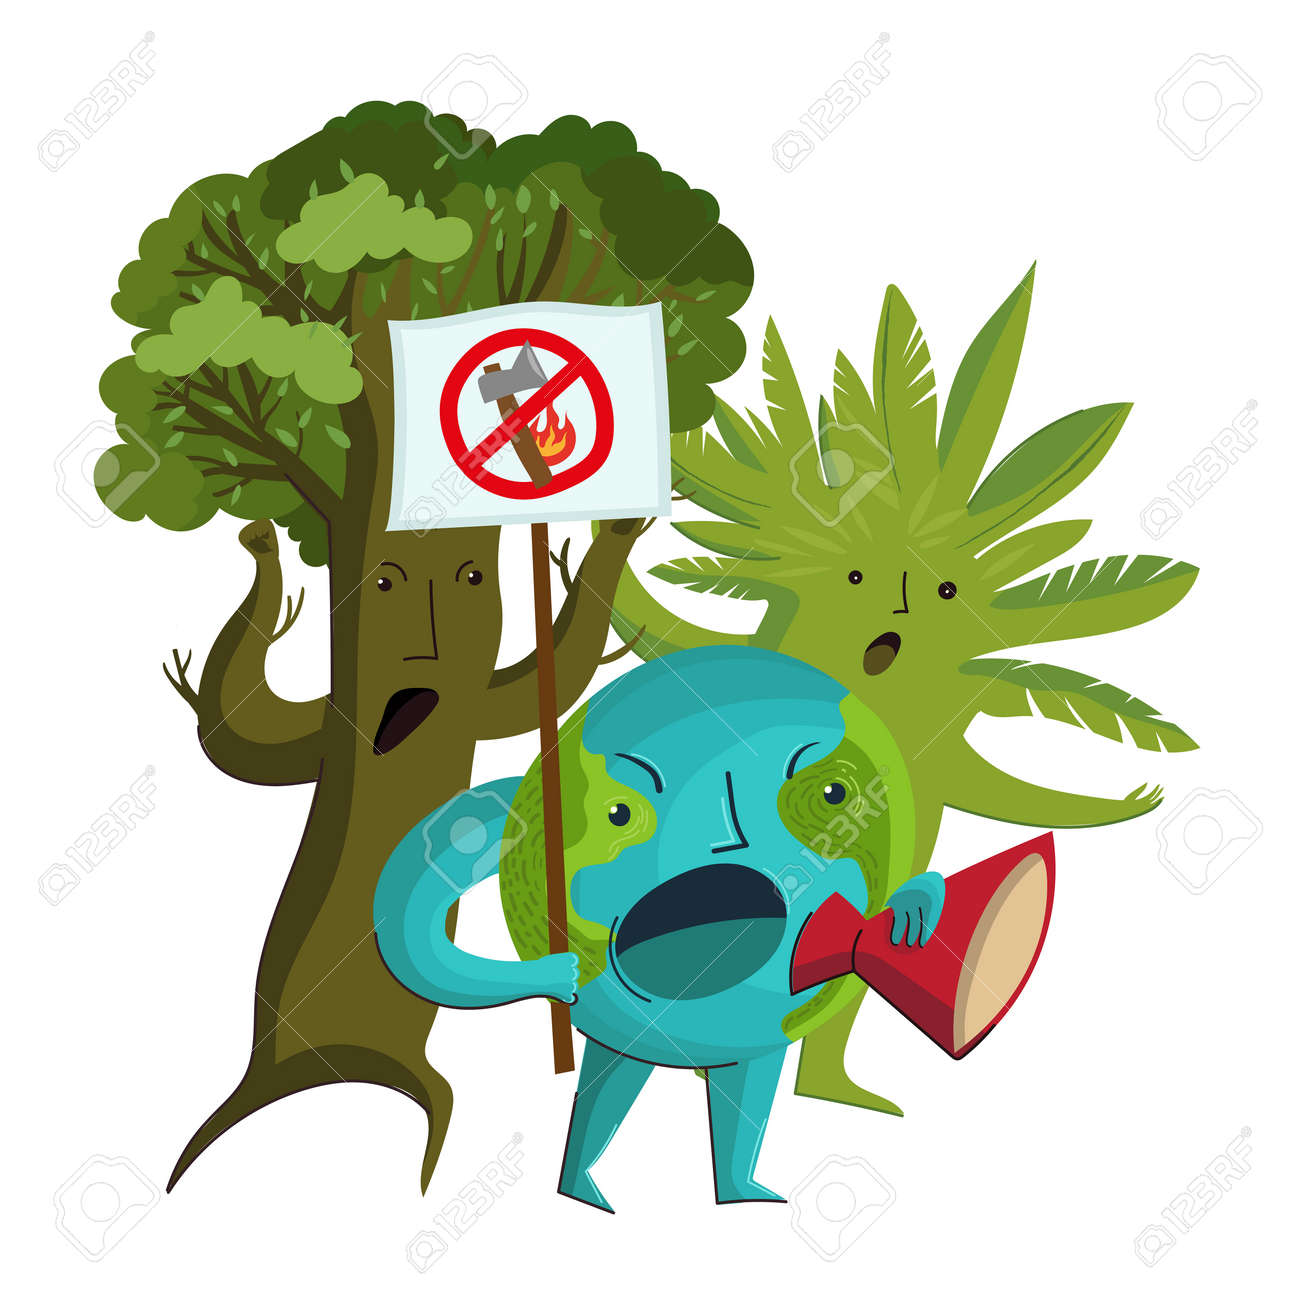 Vector cartoon characters of the planet Earth and trees who protest against the deforestation and destruction of forests. - 171669142